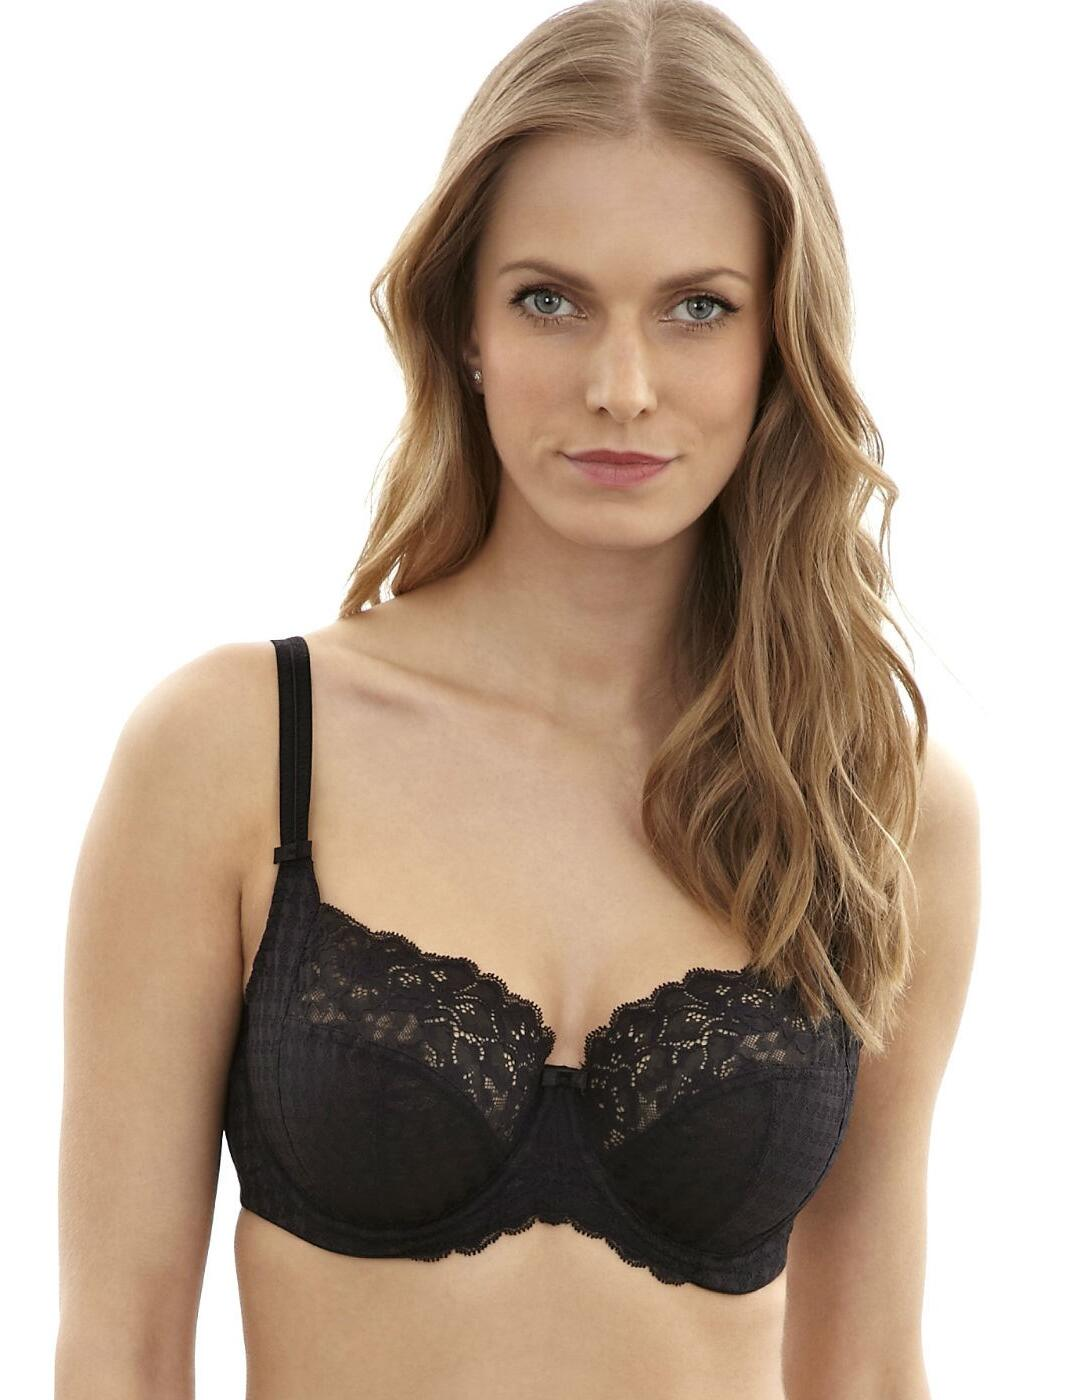 Panache Envy Full Cup Bra Underwired Non-Padded 7285 New Womens Lingerie